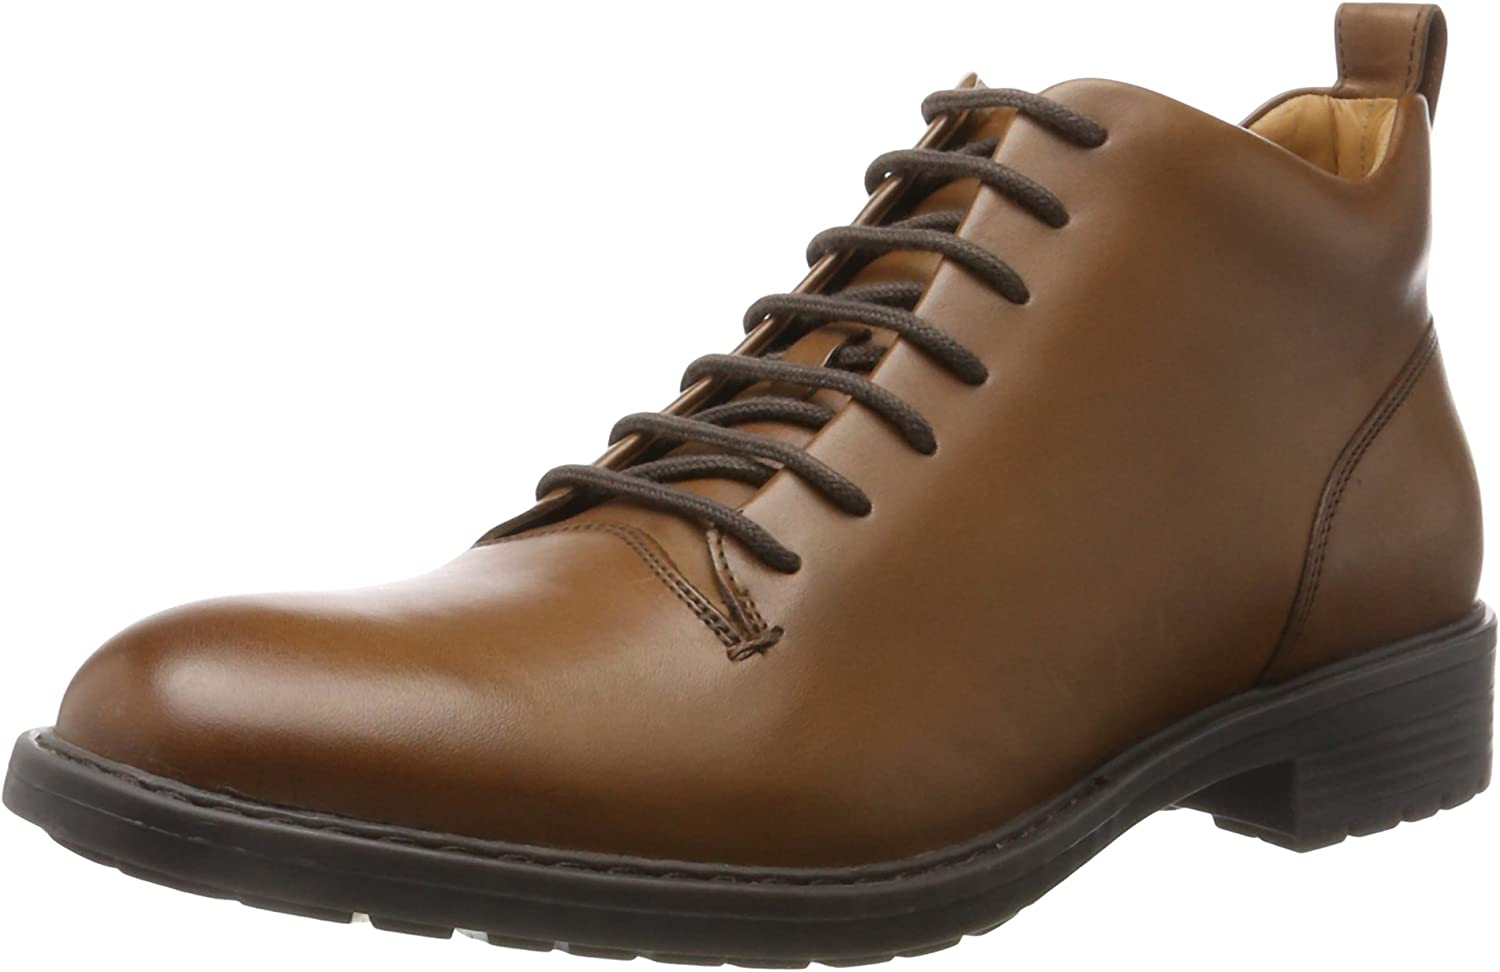 Geox Dallas Mall Men's Ankle Classic Boots OFFicial site